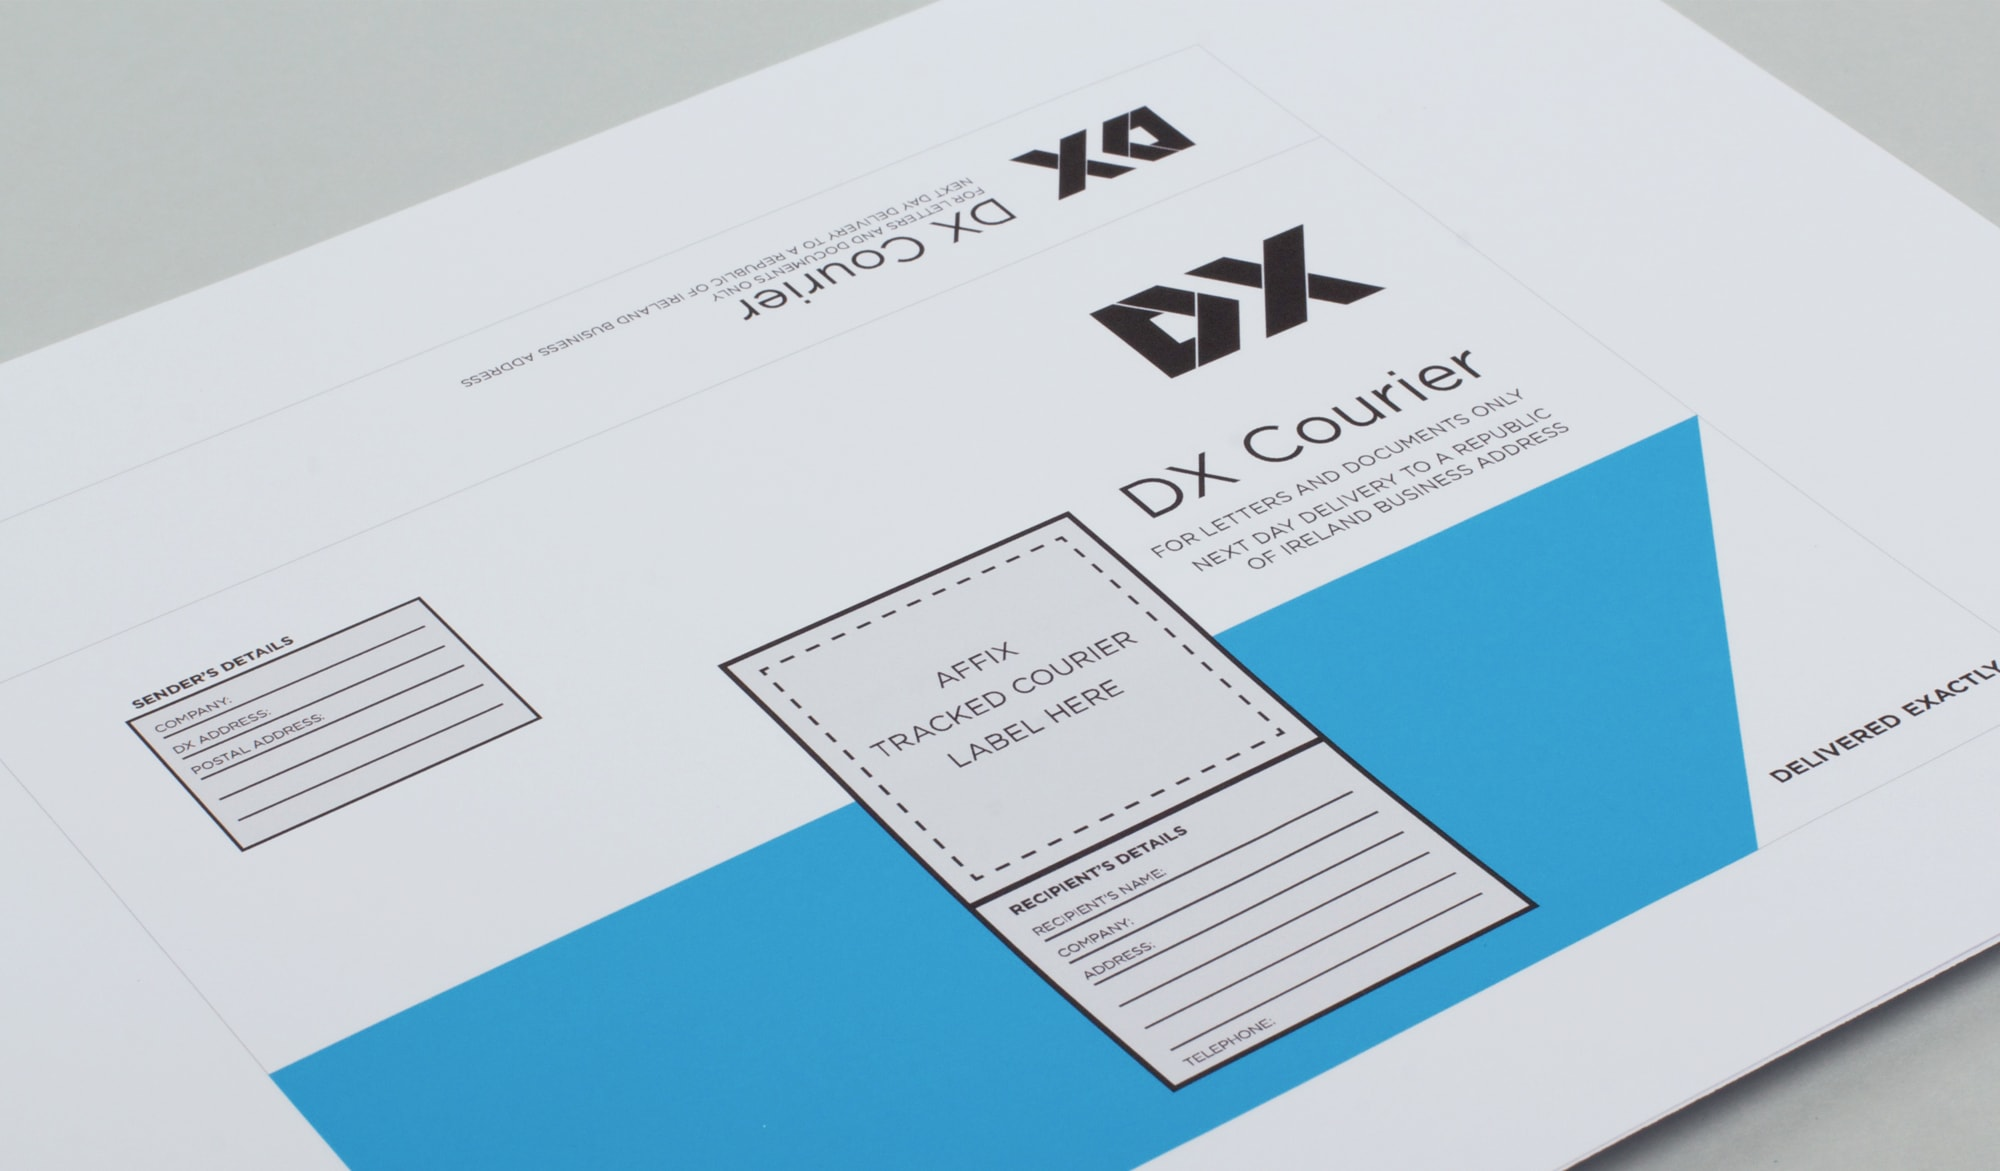 DX packaging